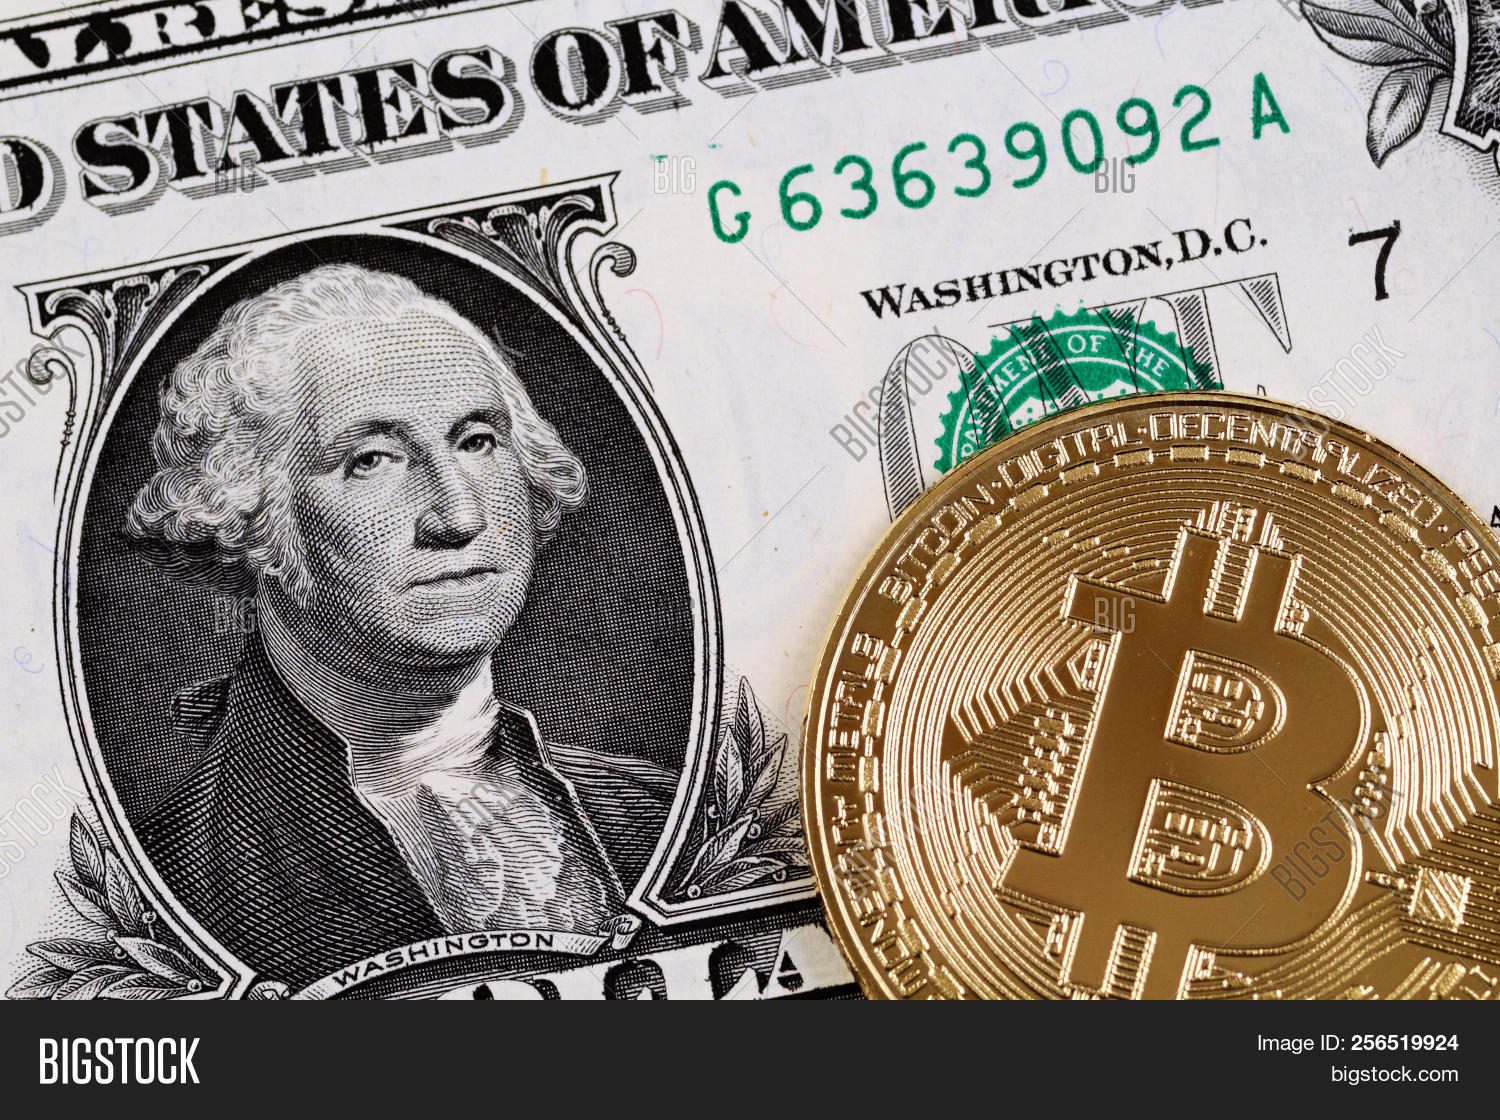 America,American,Federal,Reserve,States,United,Washington,bank,banking,bill,bitcoin,blockchain,business,cash,close,coinage,commerce,computers,crypto,currency,cyrptocurrency,dollar,economy,exchange,extreme,finance,financial,global,gold,golden,international,investment,macro,market,money,rate,savings,secret,trade,up,usa,world